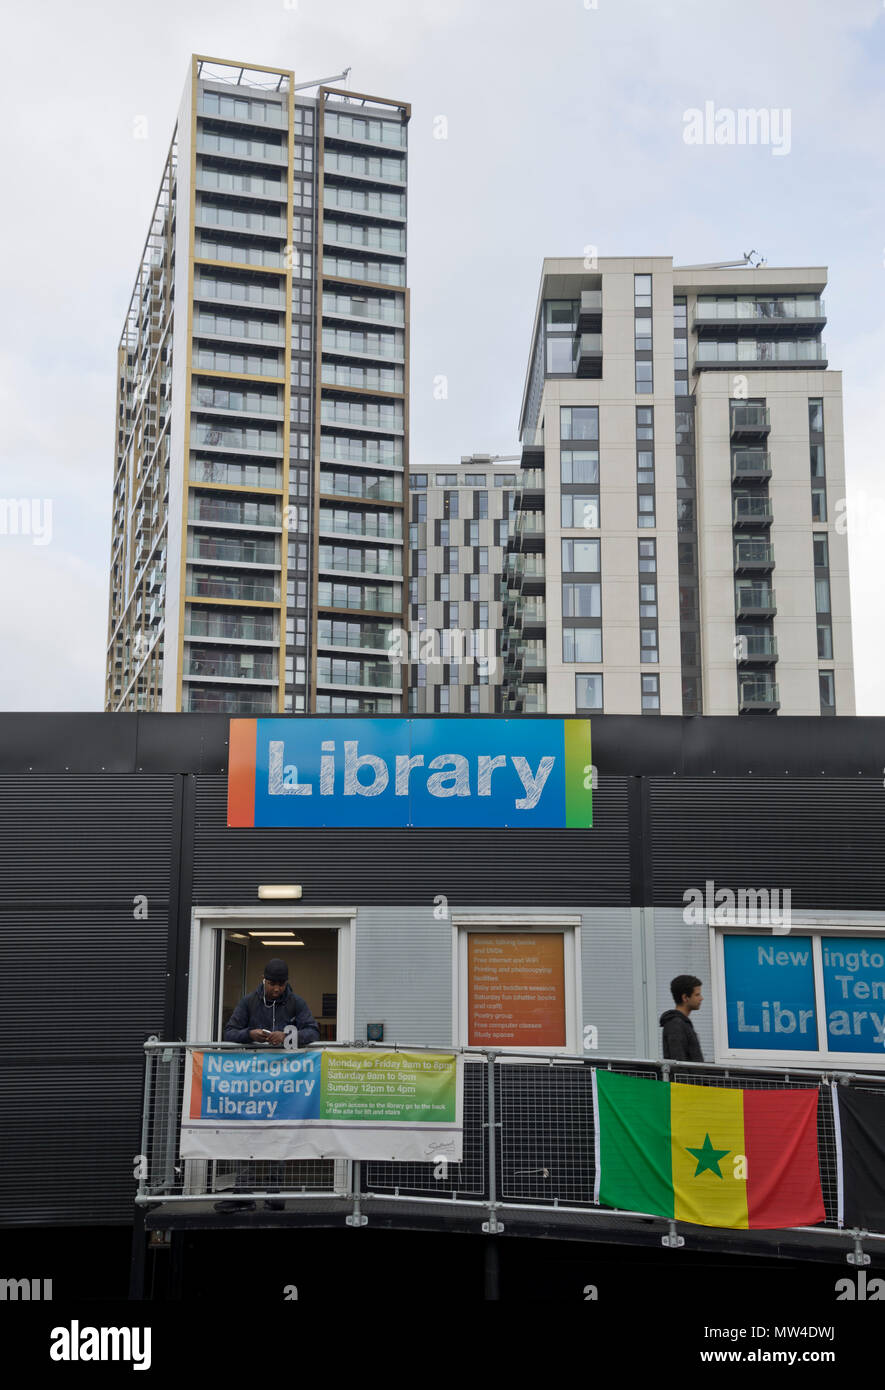 New housing development by the old Elephant and Castle shopping centre, to be demolished to give way to a new mall and luxury housing in London, Engla - Stock Image